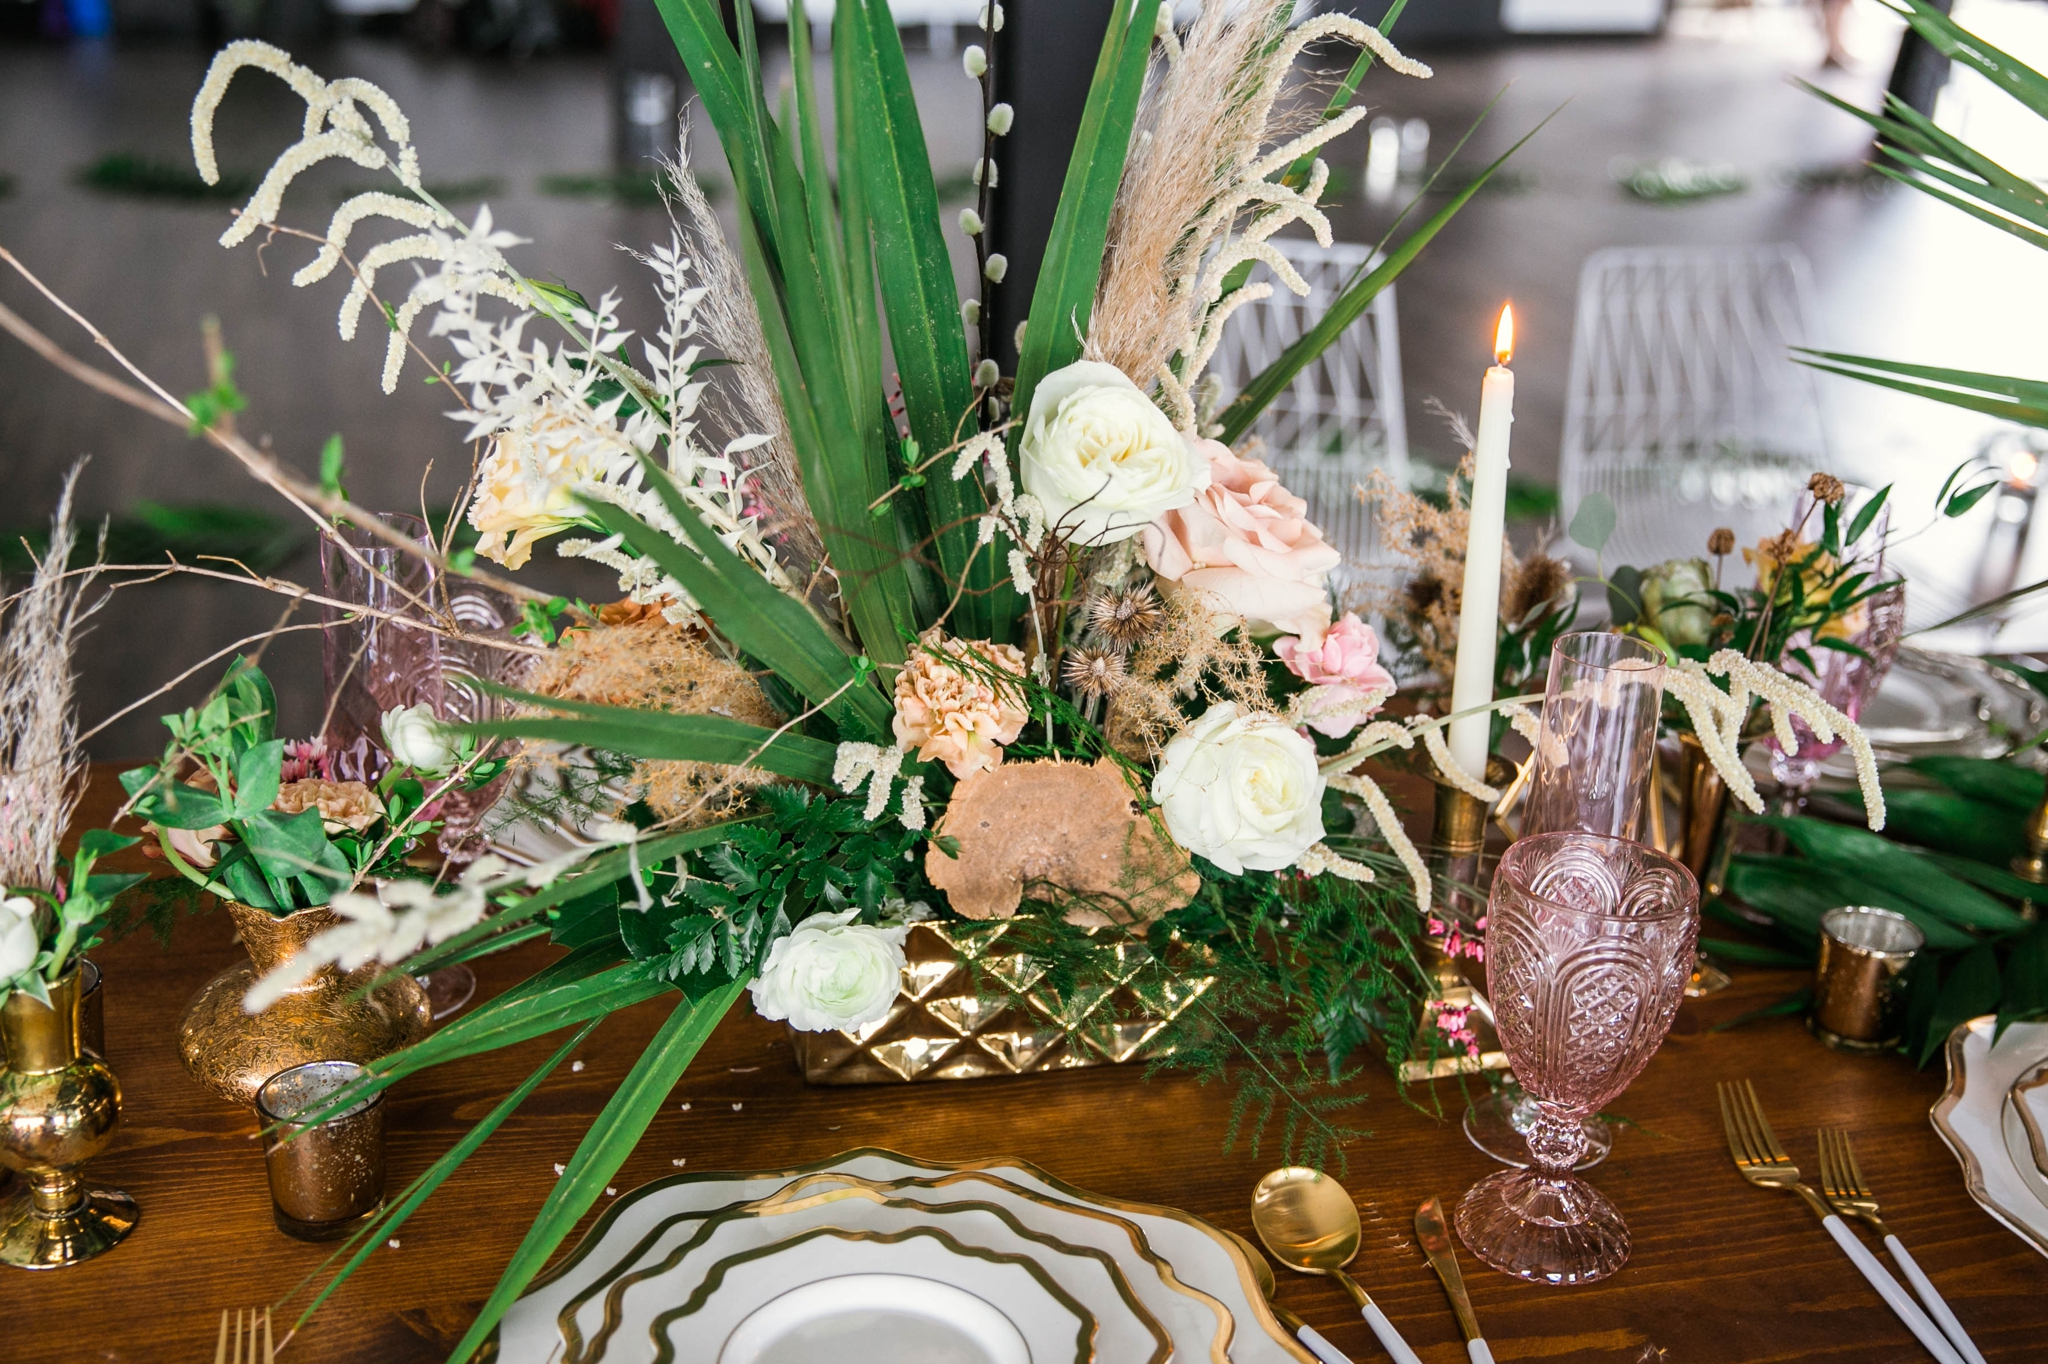 colorful flowers and big tropical center piece on a wooden family style table - Destination Wedding Inspiration - Honolulu, Oahu, Hawaii Photographer